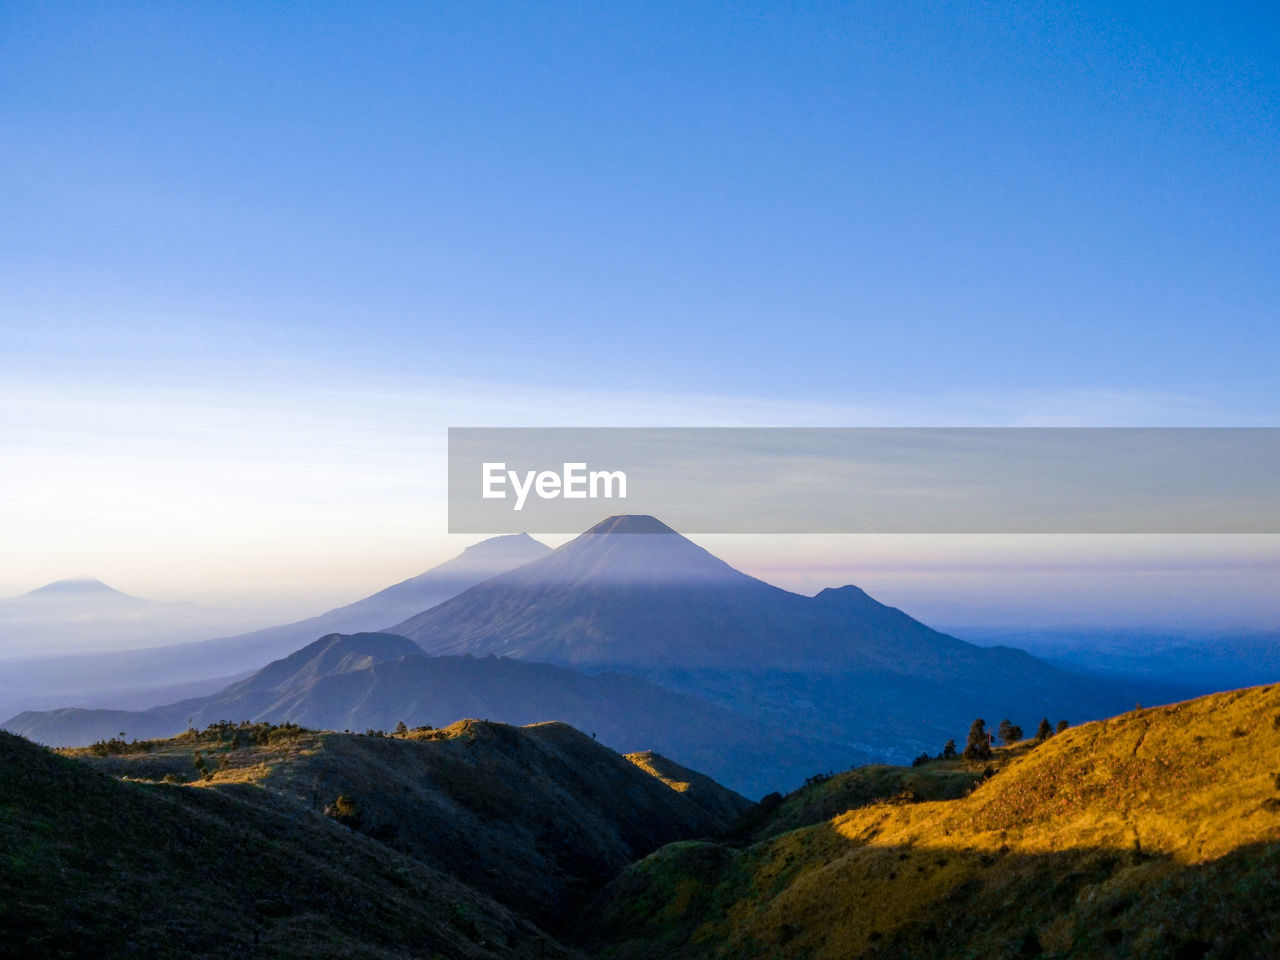 Sinoro sumbing can be seen from the top of mount prau wonosobo, dieng, central java